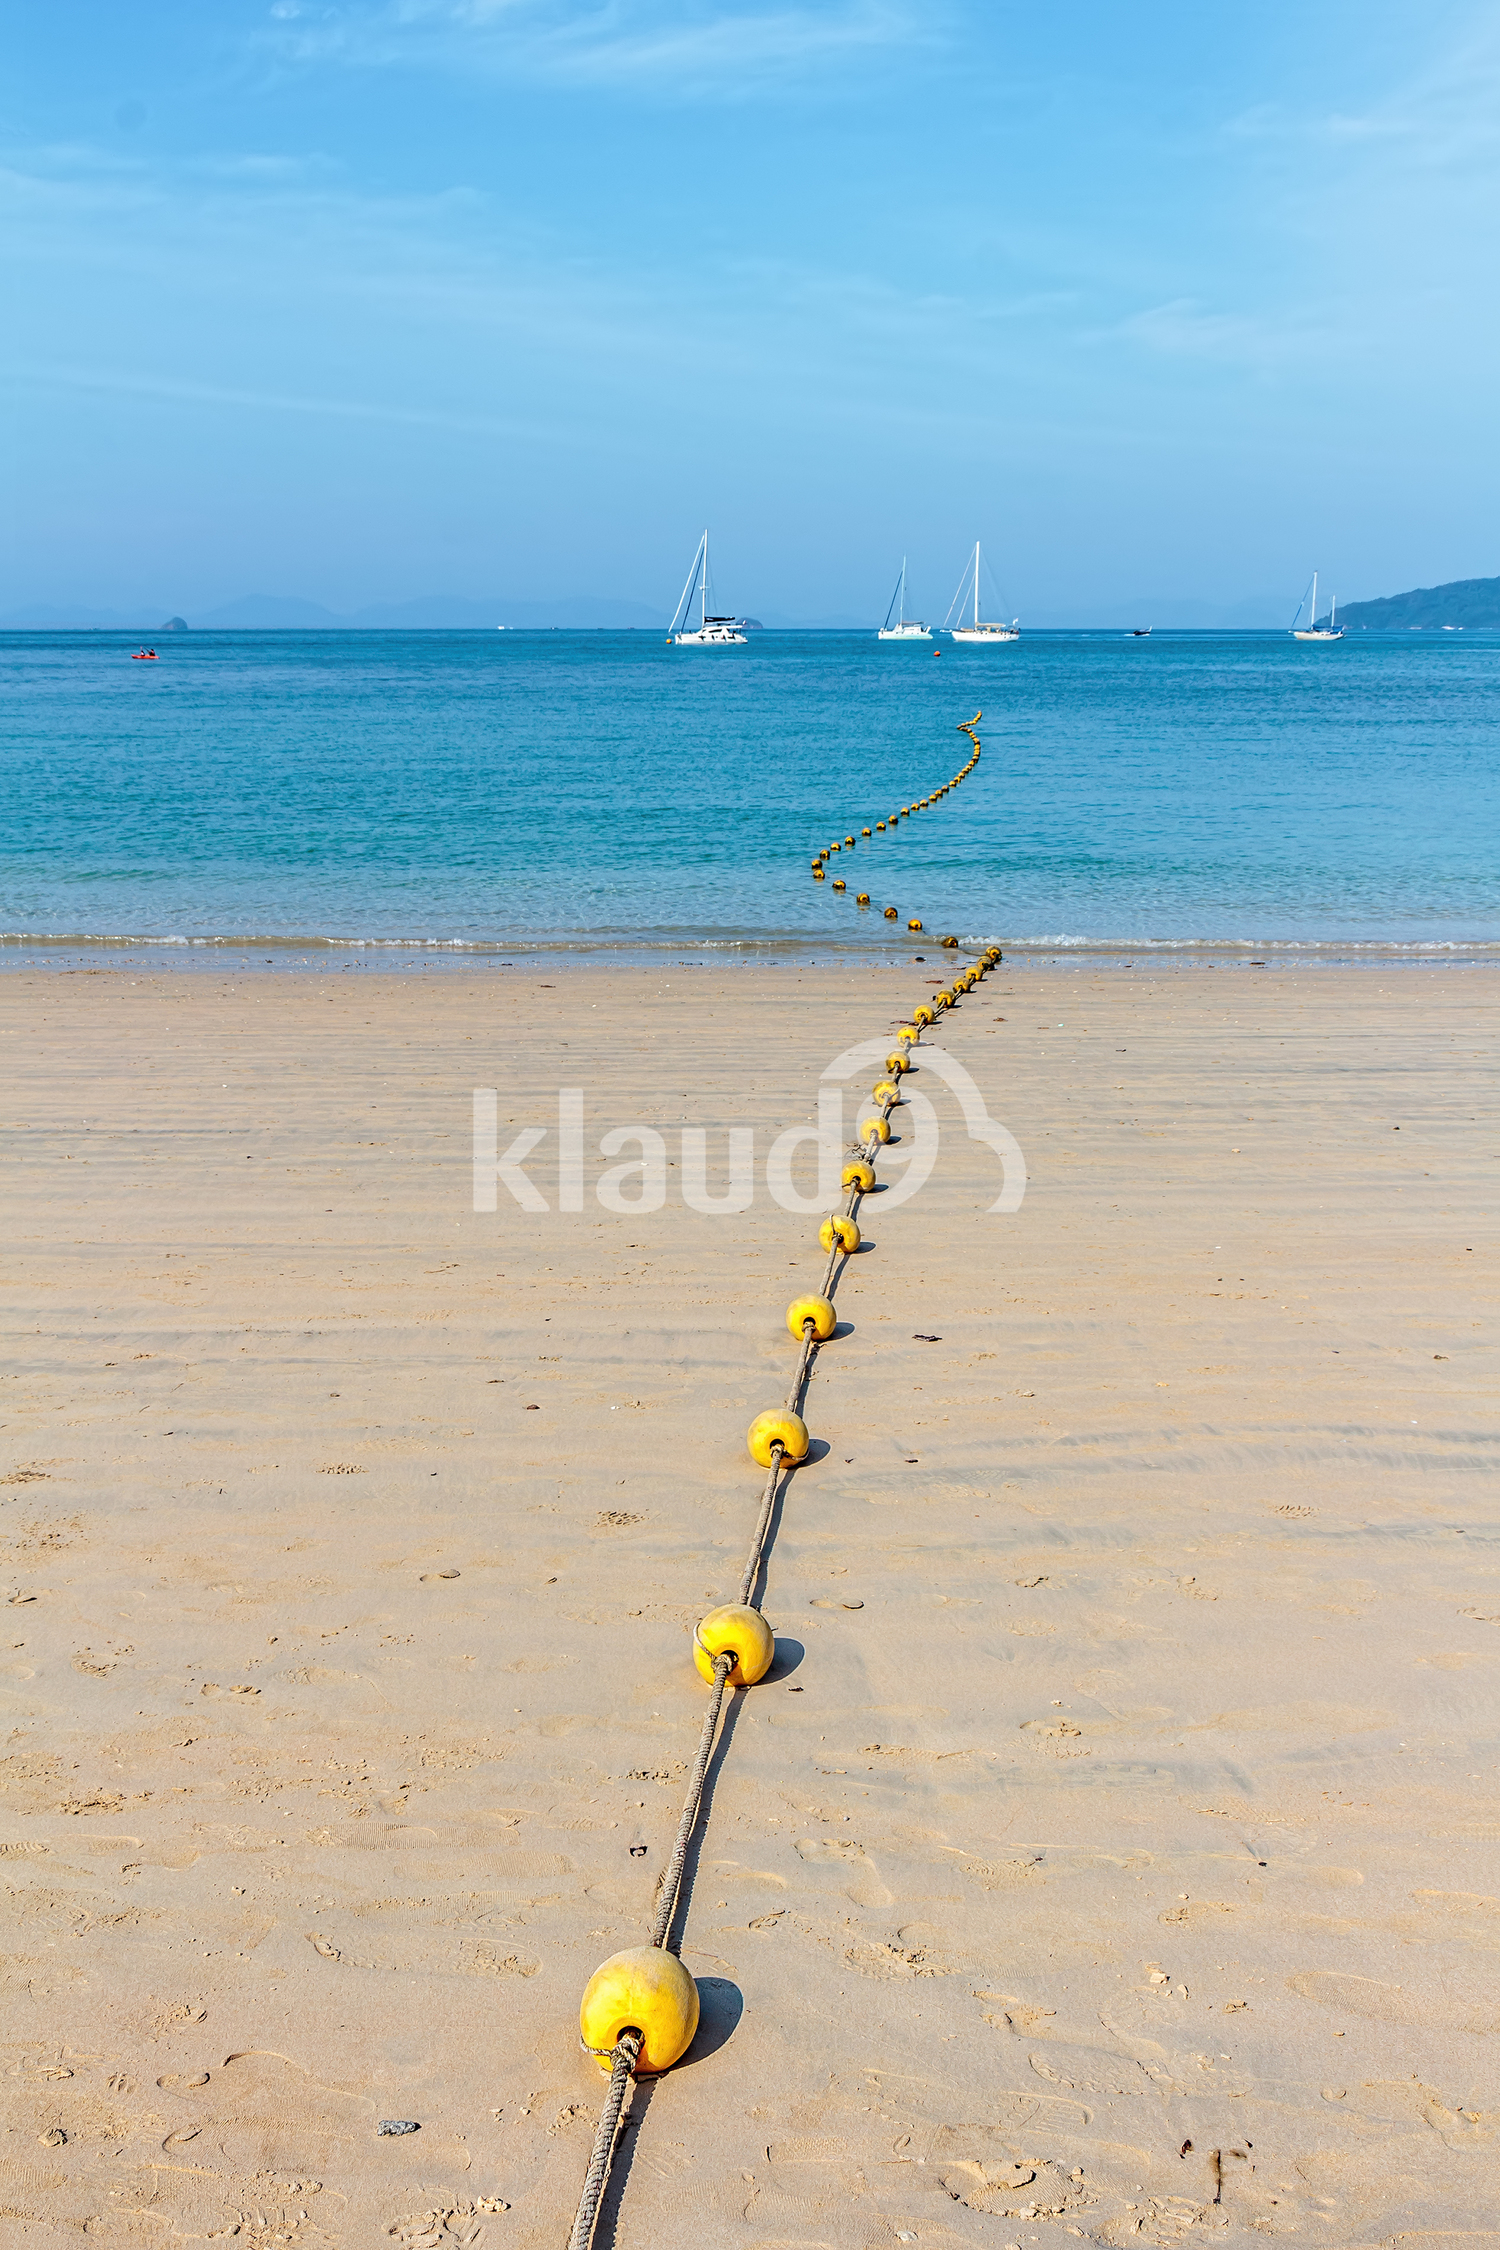 Tropical sandy beach and white yachts in the sea. Kingdom of Thailand, Krabi Province, Railay Peninsula, Railay West Beach